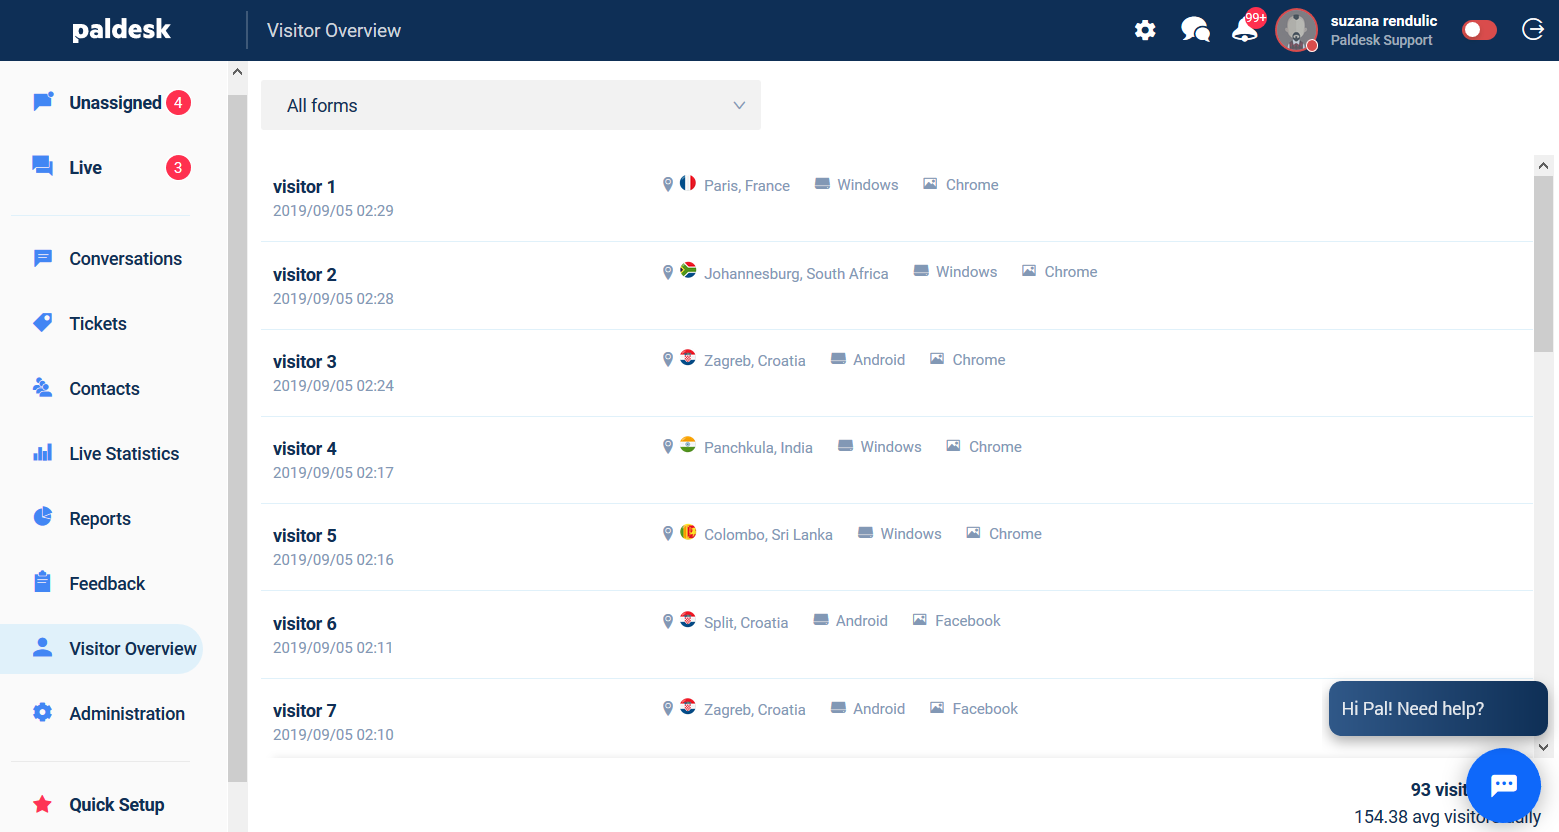 Visitor overview dashboard